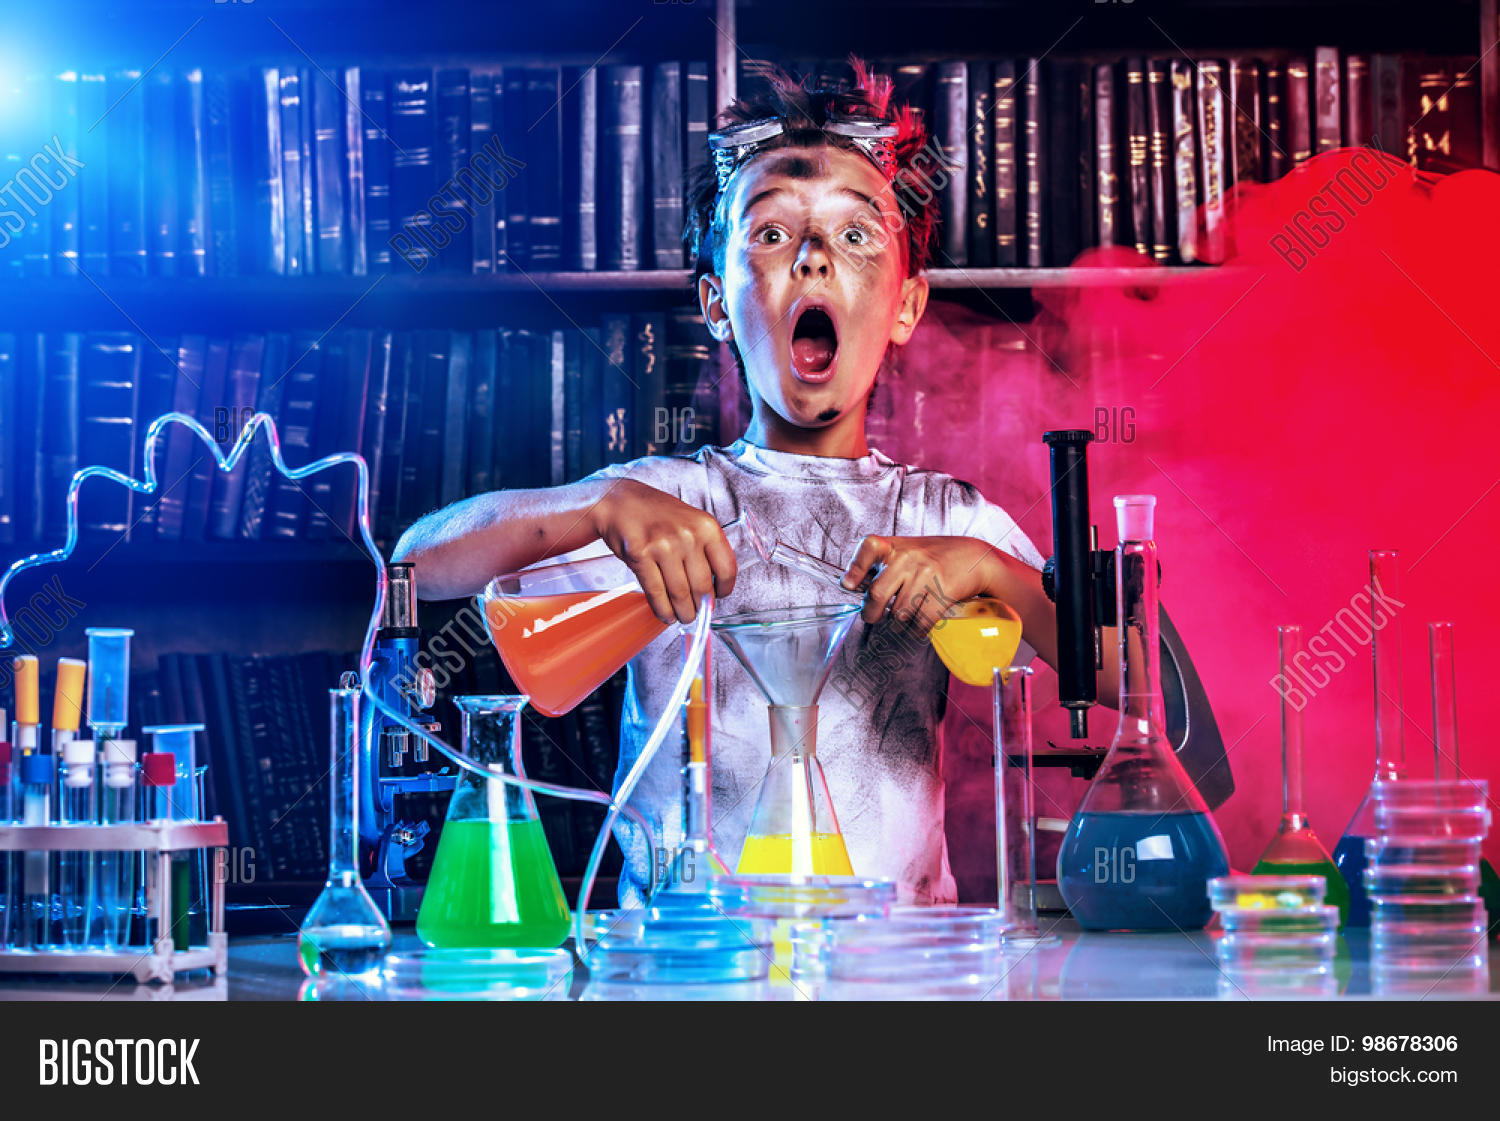 Boy Doing Experiments Image Amp Photo Free Trial